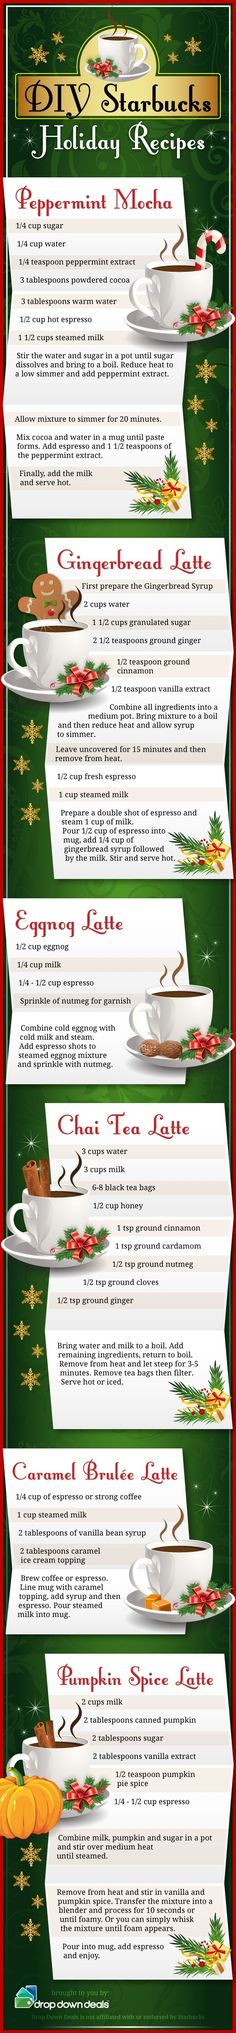 DIY Starbucks holiday drink recipes. perfect for a cold winter night at home. [Infographic]